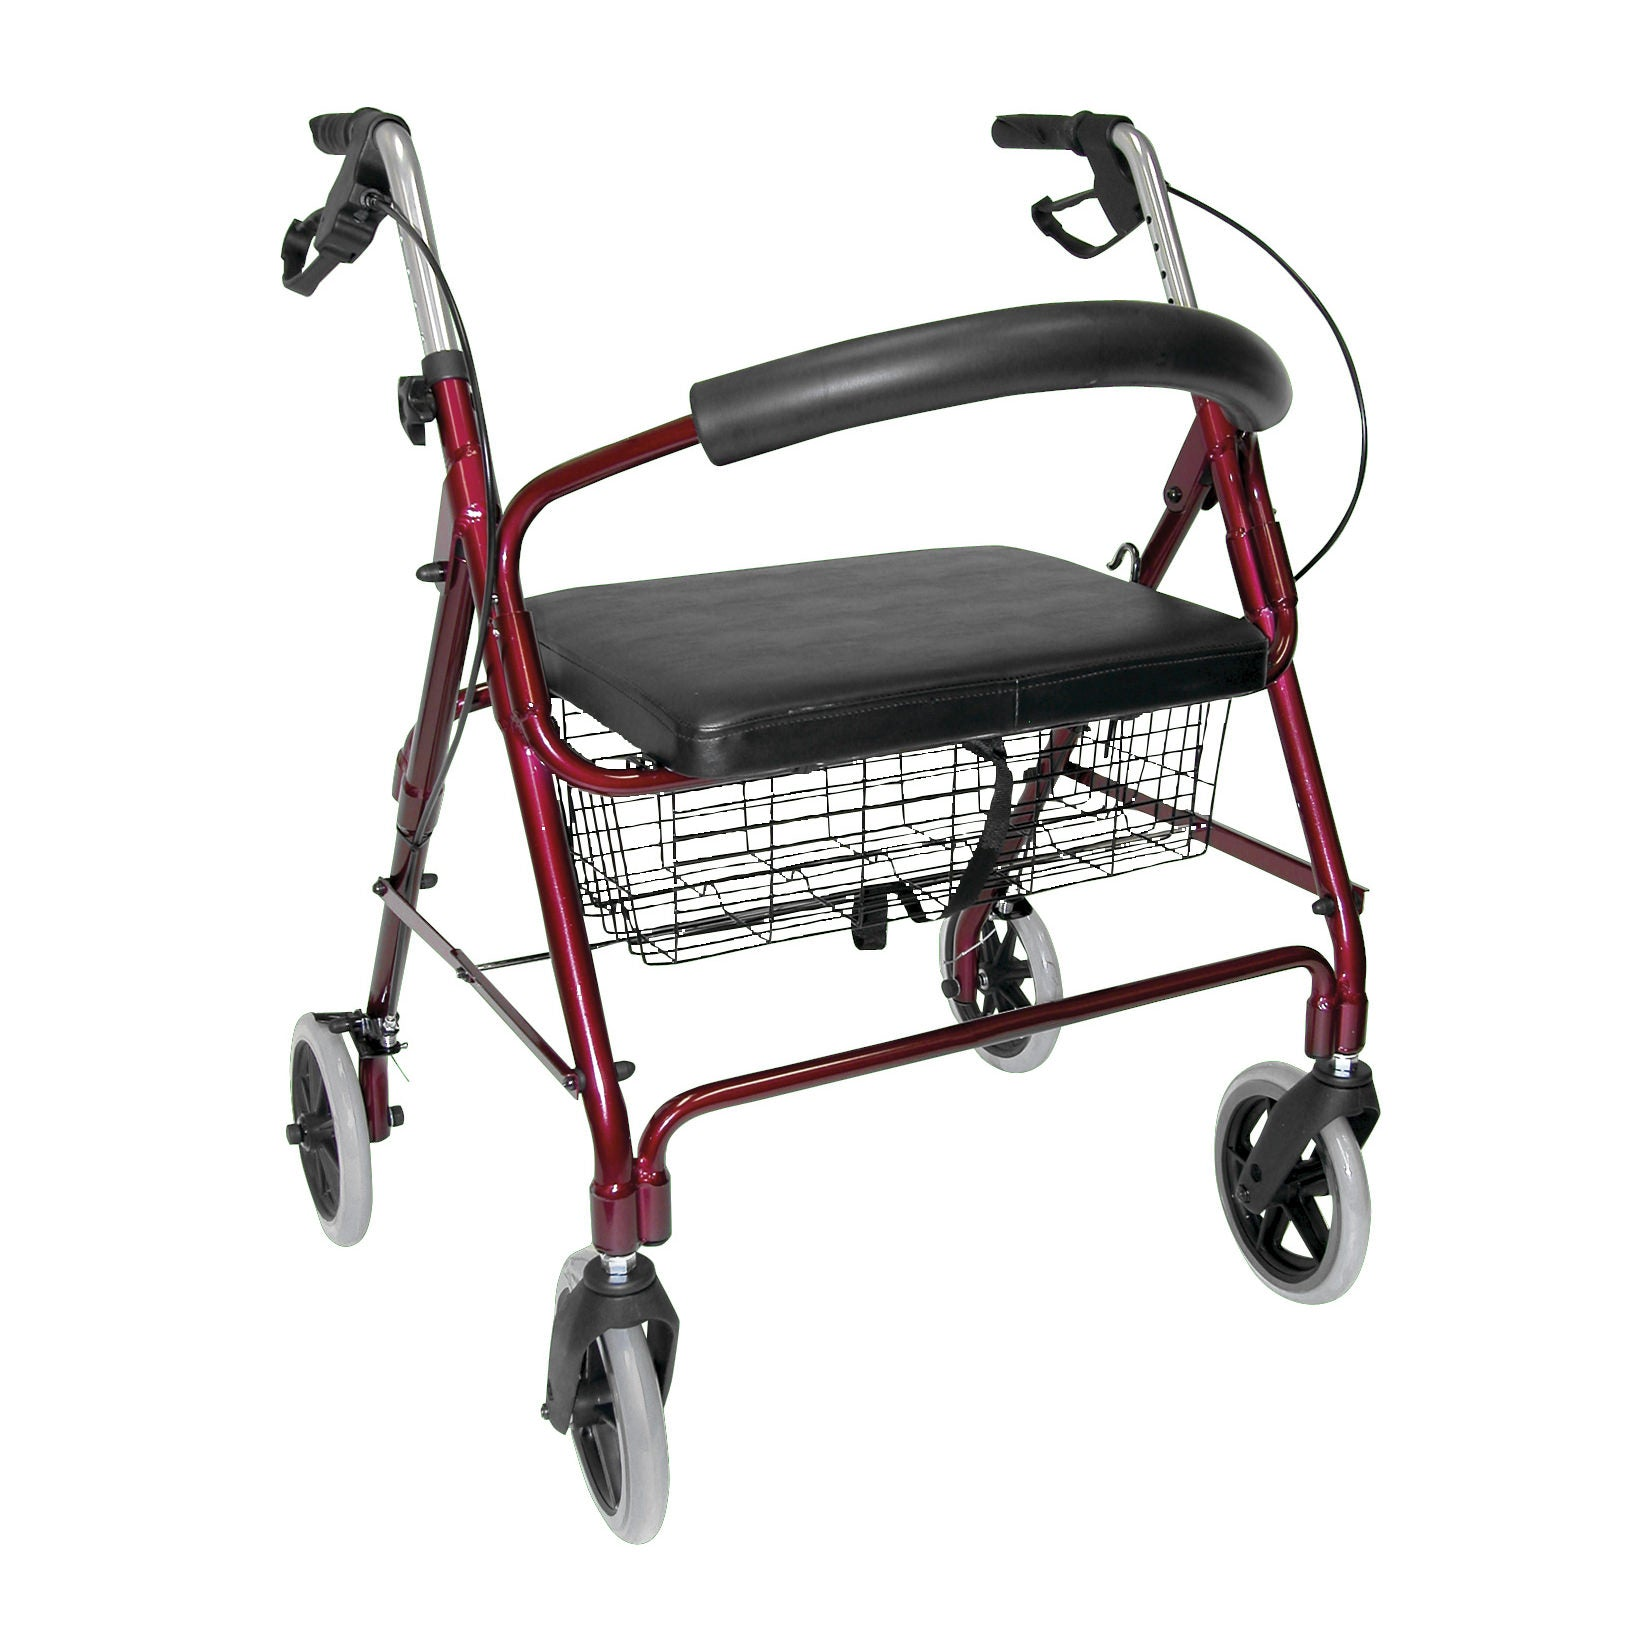 Mabis Lightweight Extra-Wide Heavy-Duty Rollator